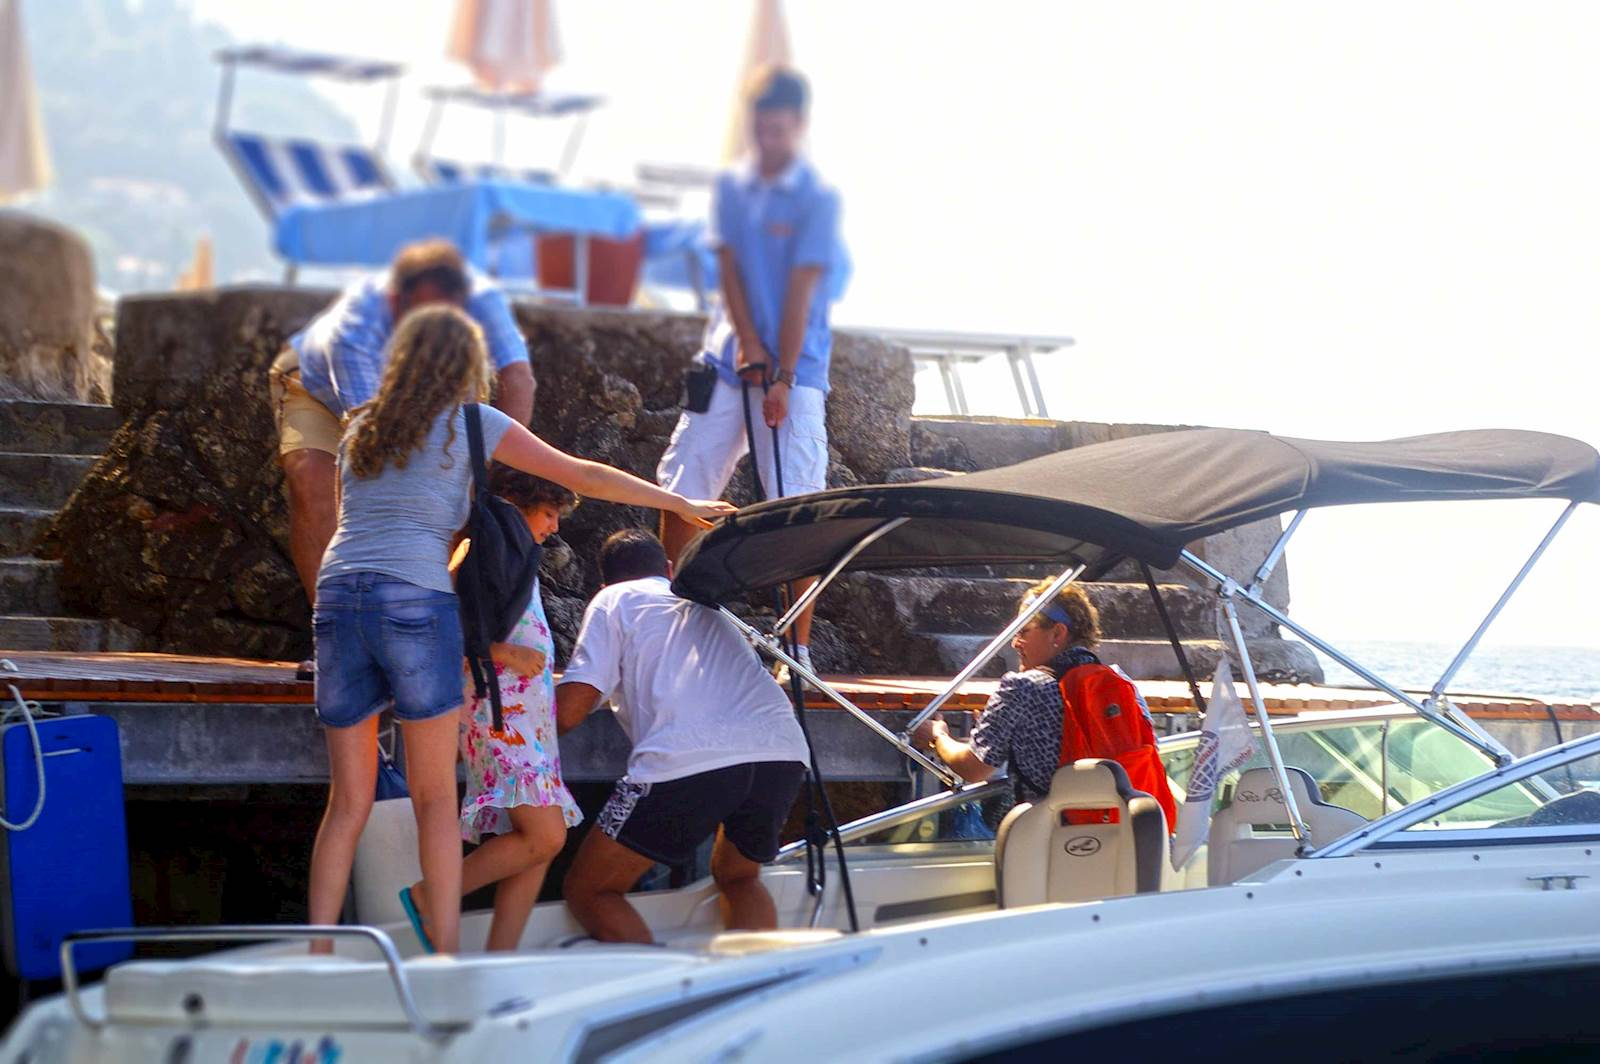 -images-excursions-montenegro-boat-tour-villa-dubrovnik-luxury-speedboat-hotel-pickup-drop-off.jpg